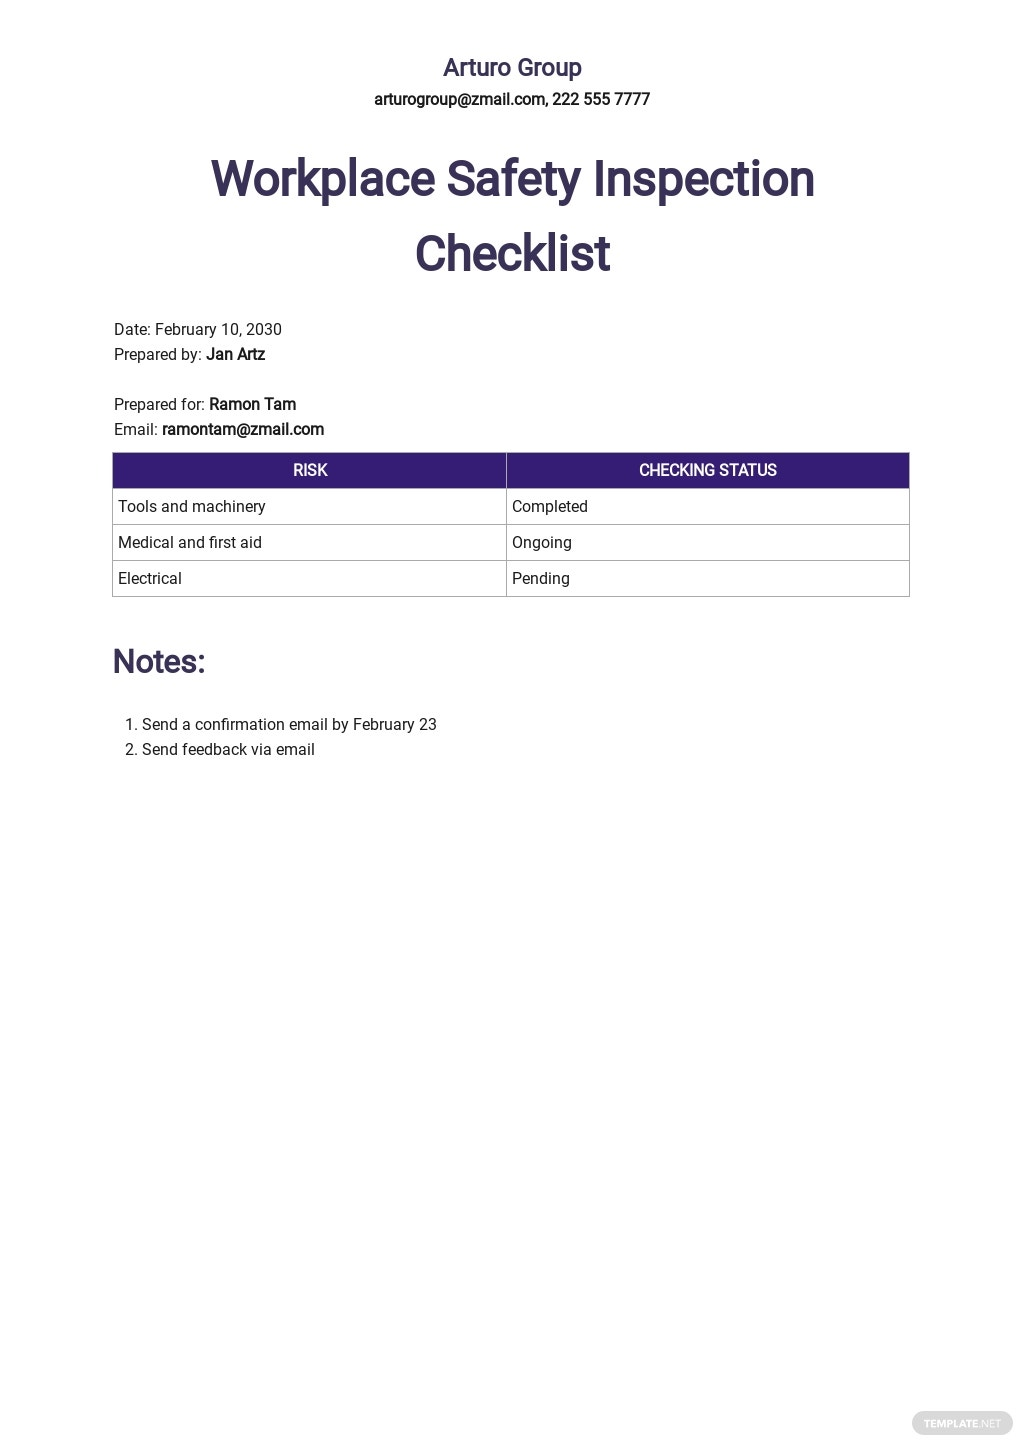 Workplace Safety Inspection Checklist Template.jpe